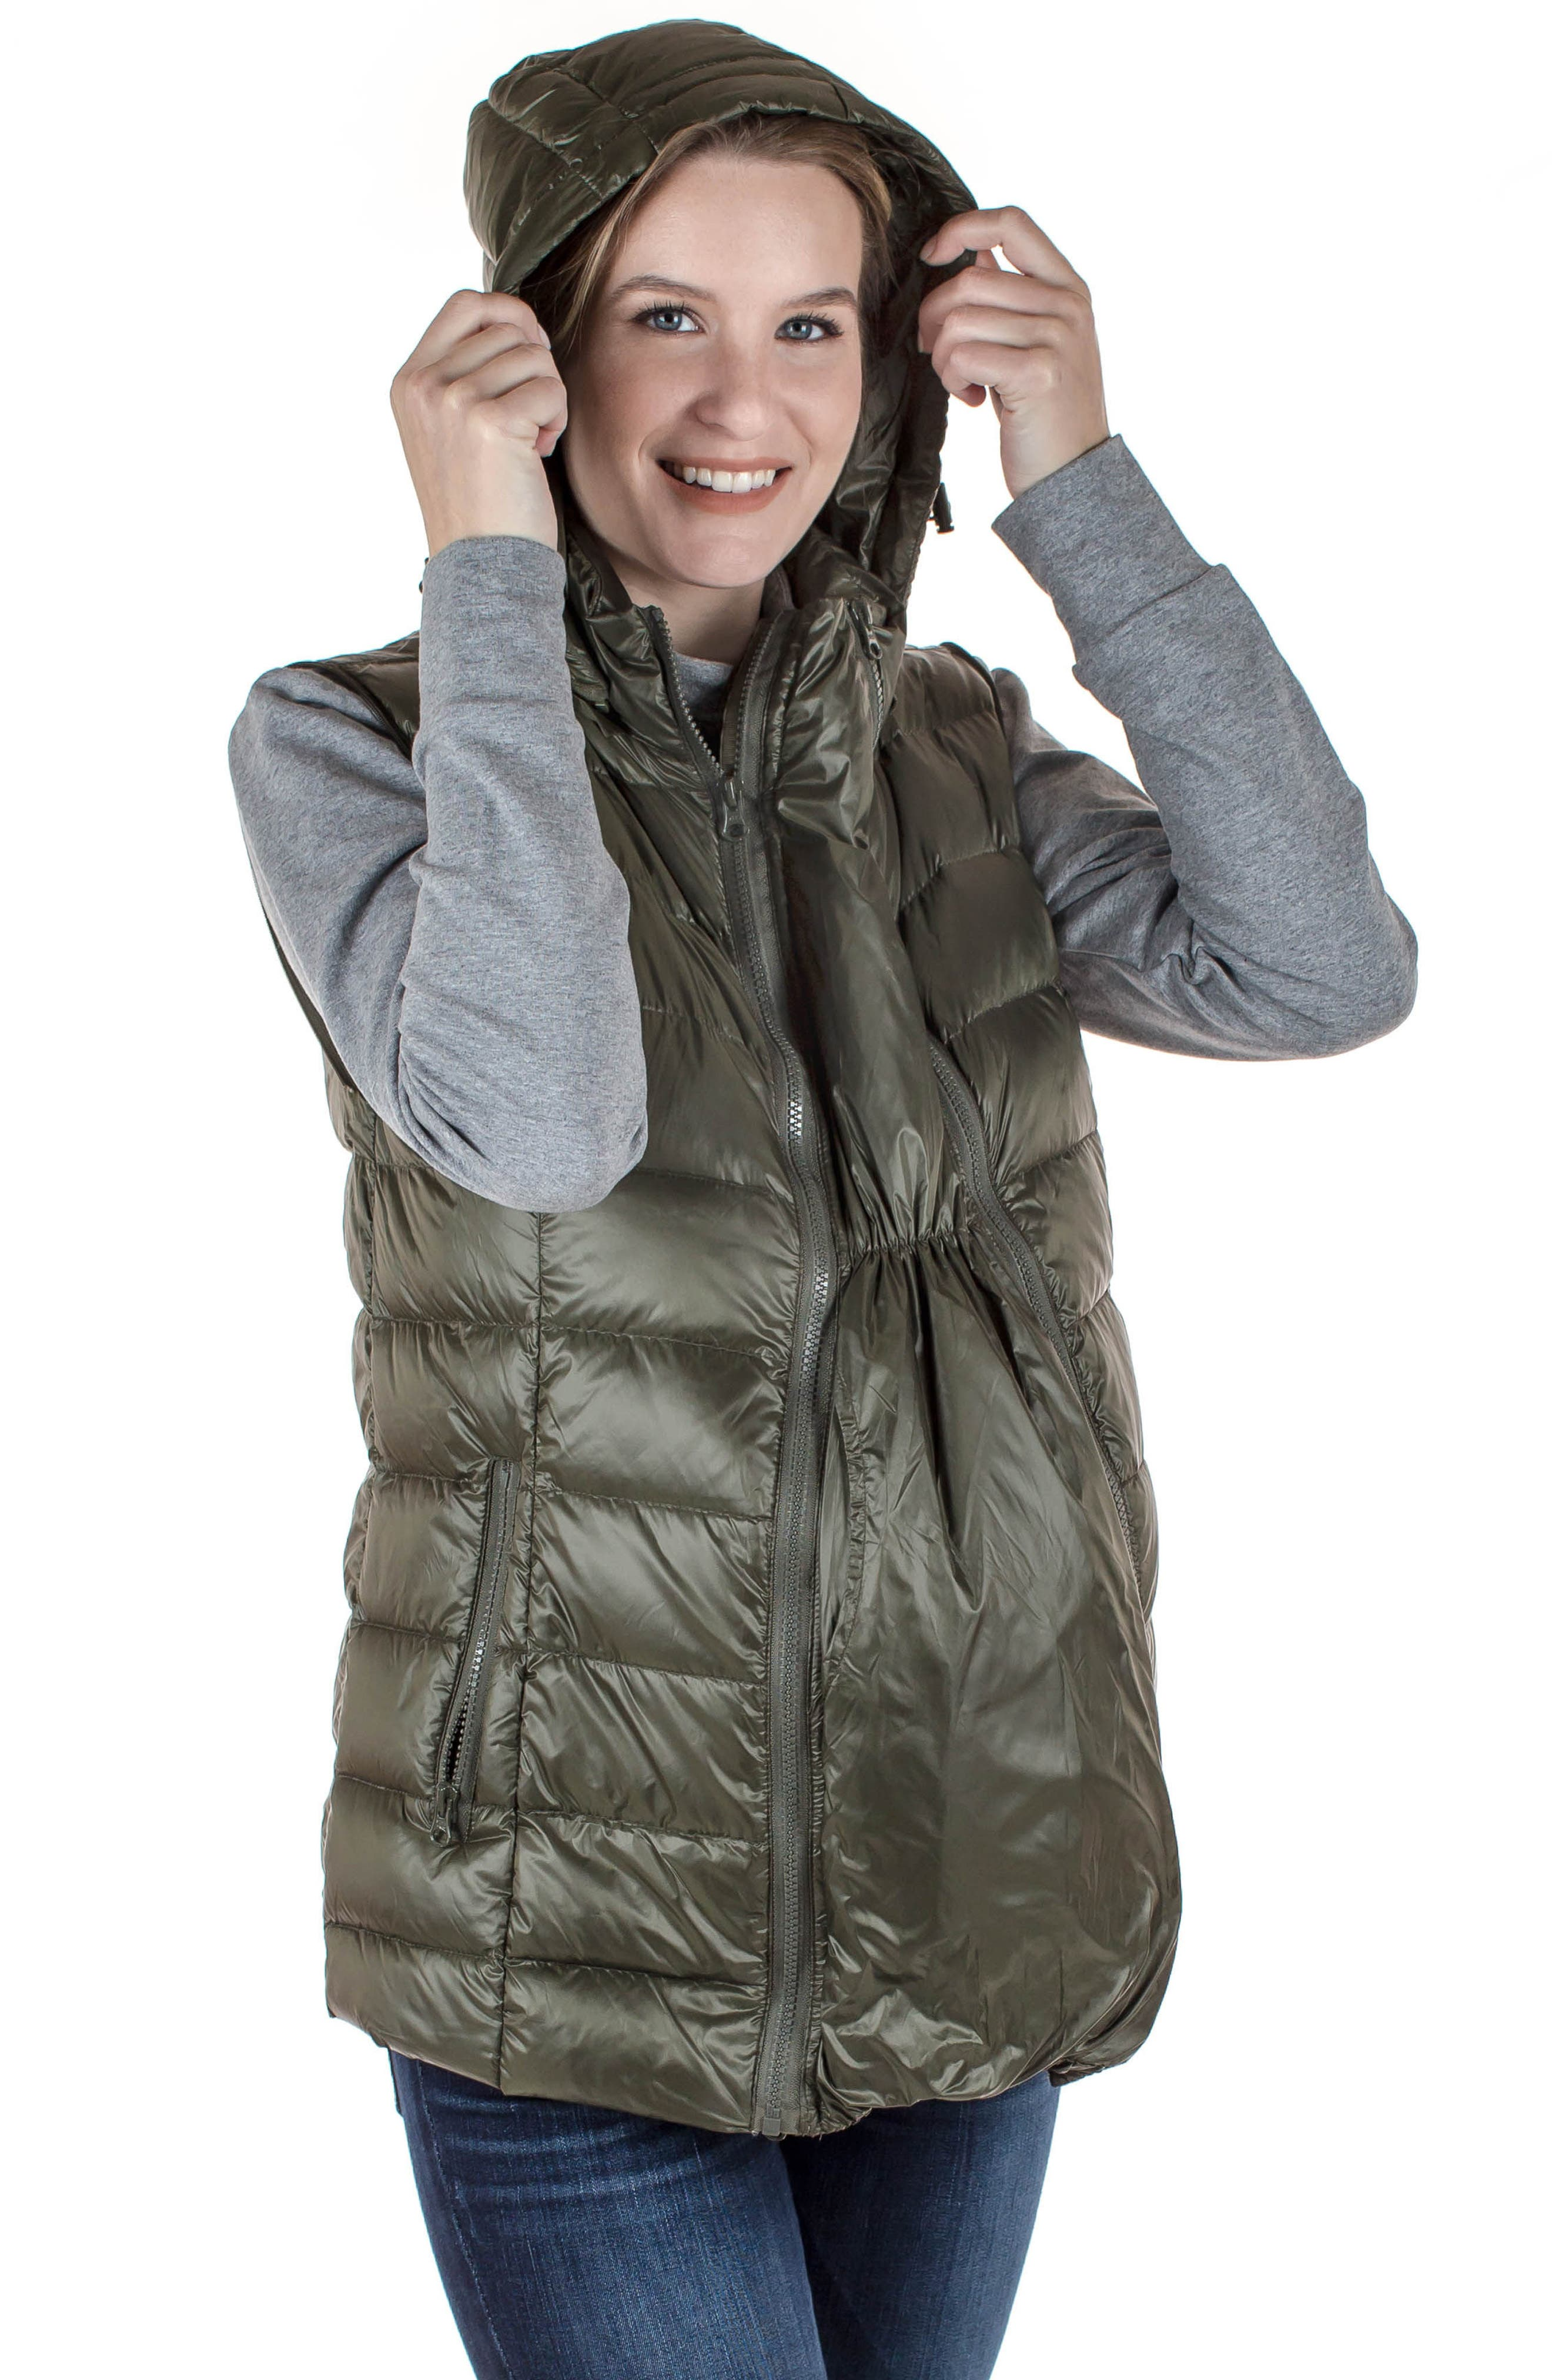 Lightweight Puffer Convertible 3-in-1 Maternity Jacket,                             Alternate thumbnail 9, color,                             KHAKI GREEN